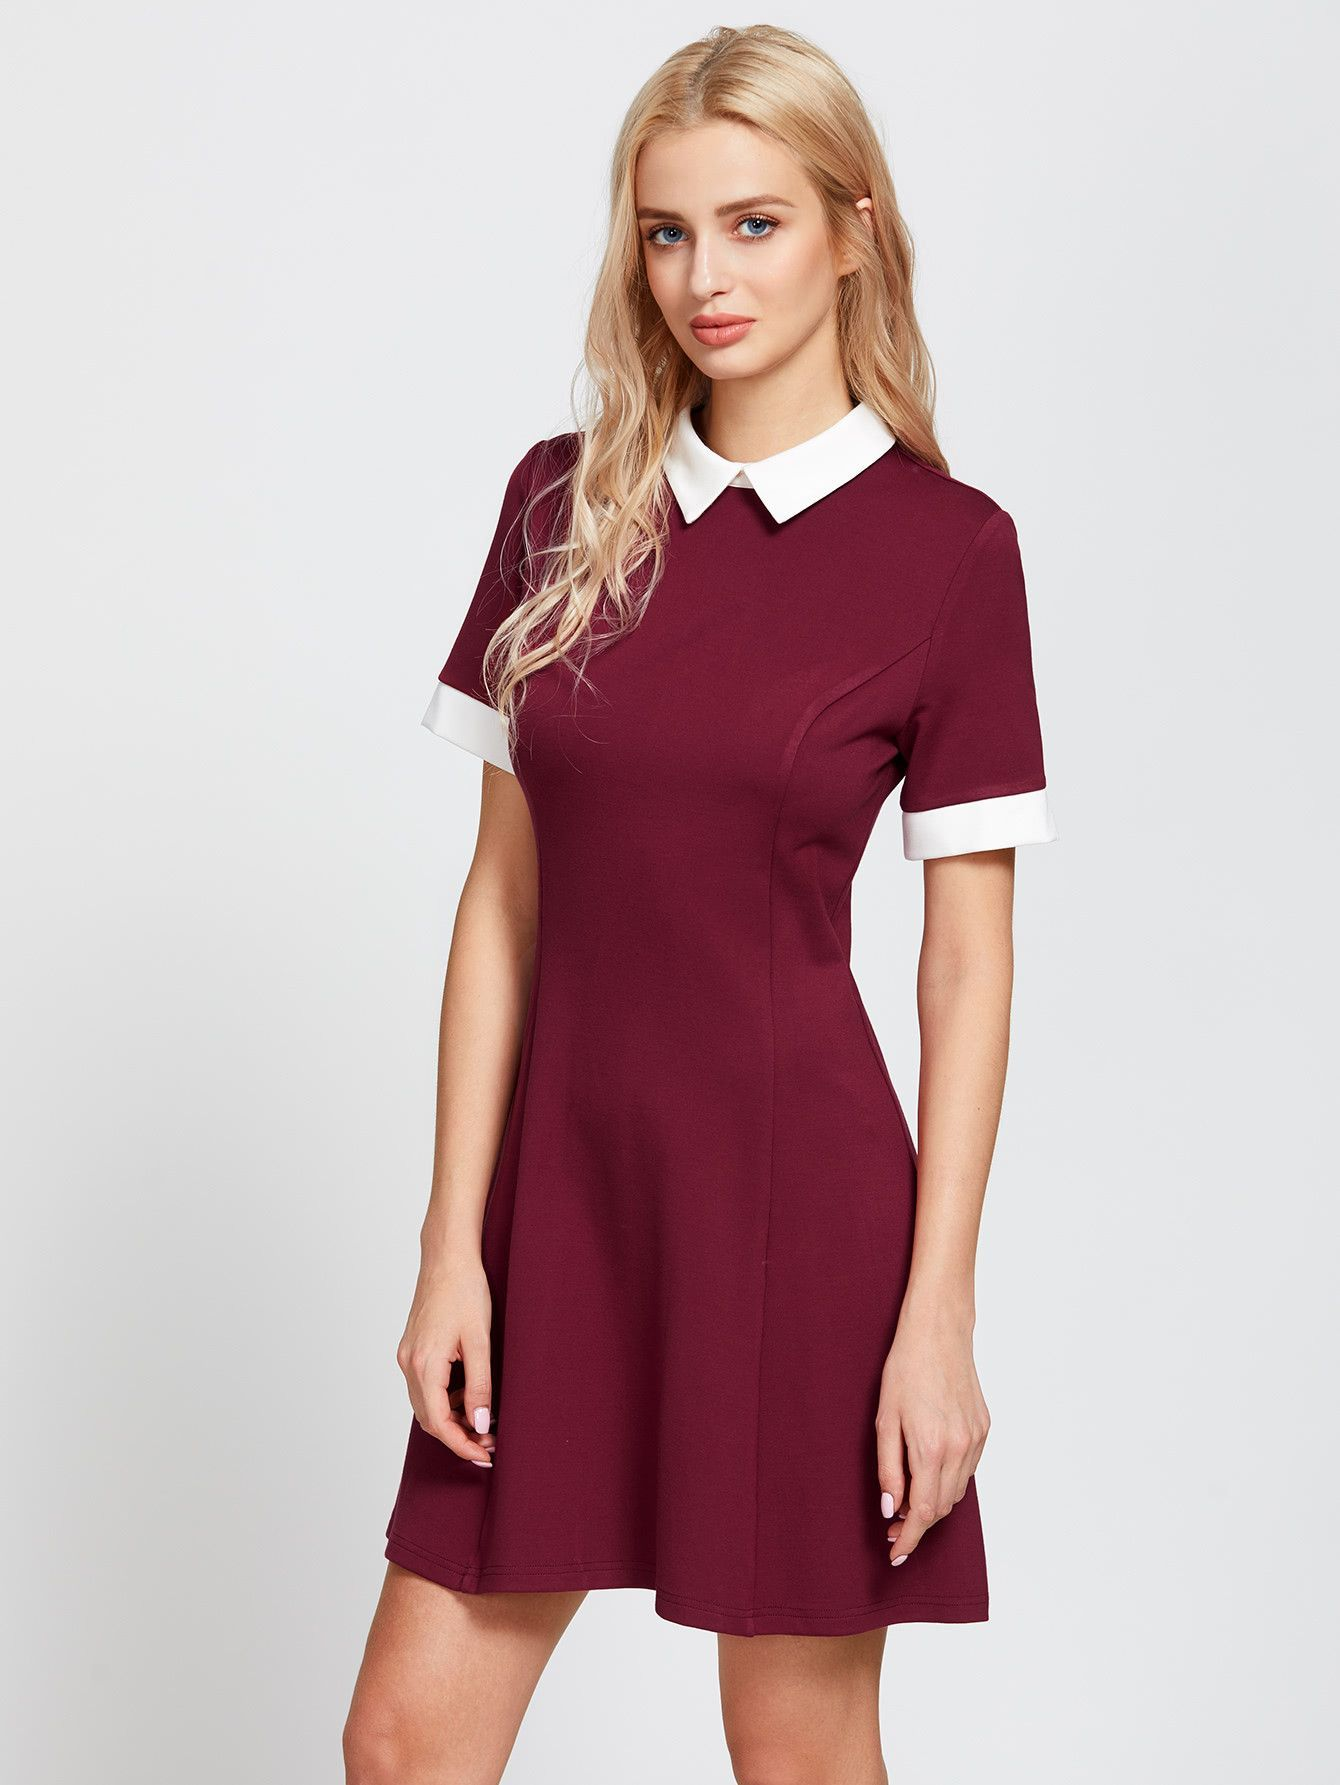 20926eb361 Burgundy Contrast Short Sleeve Skater Shirt Dress